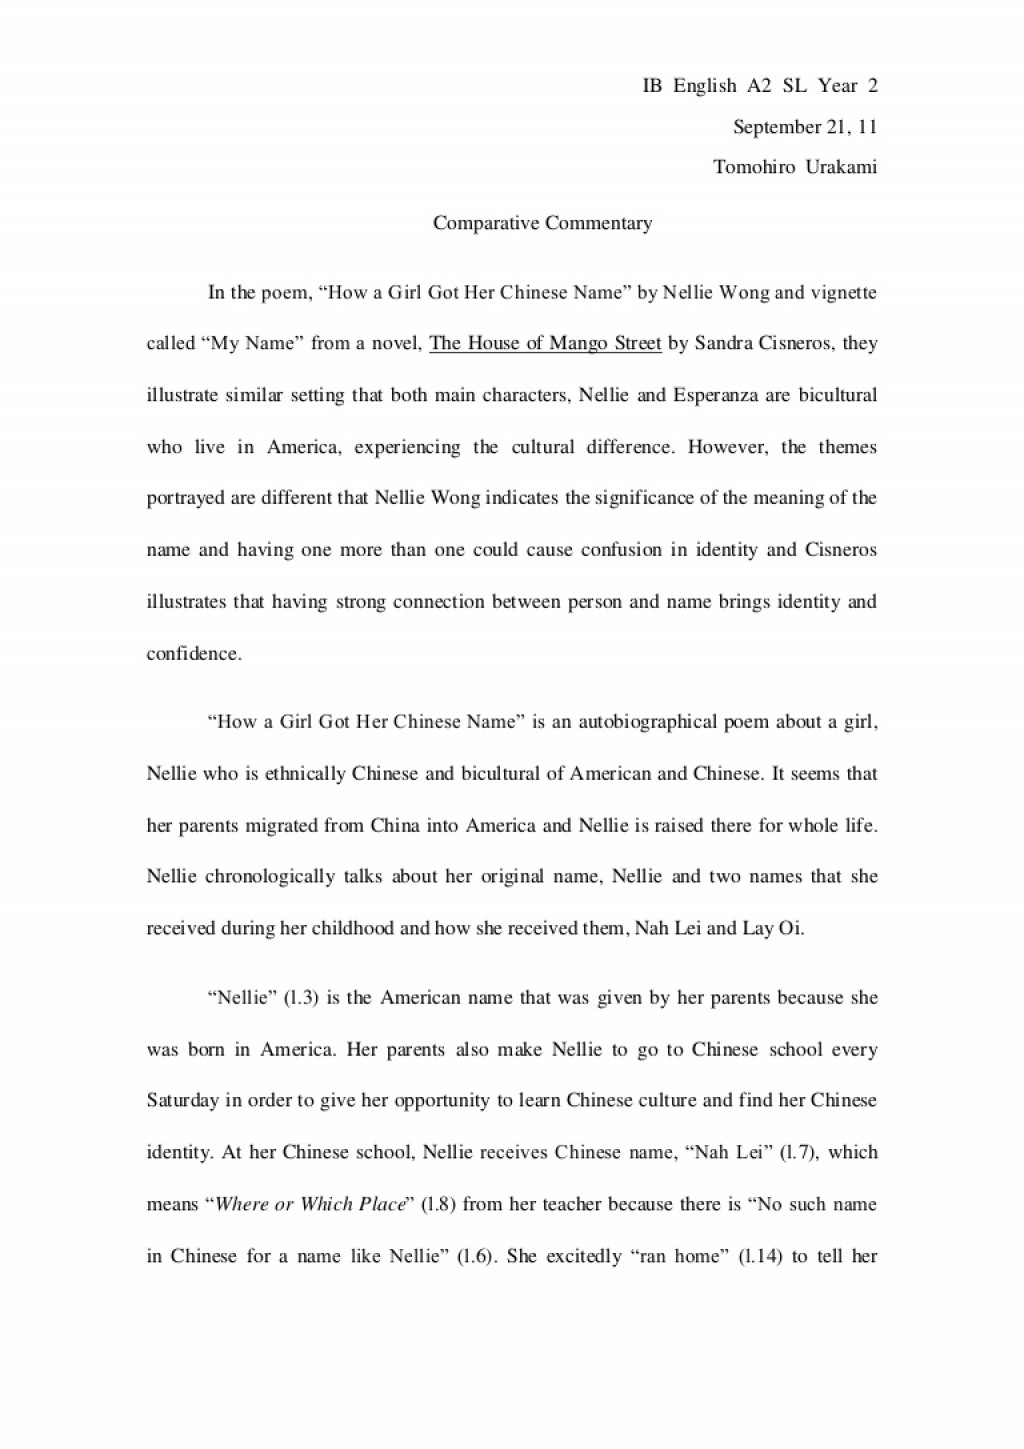 008 Compare And Contrast Essays Comparativeessaydraft Phpapp02 Thumbnail Magnificent Essay Examples 9th Grade For Elementary Students Topics 6th Large